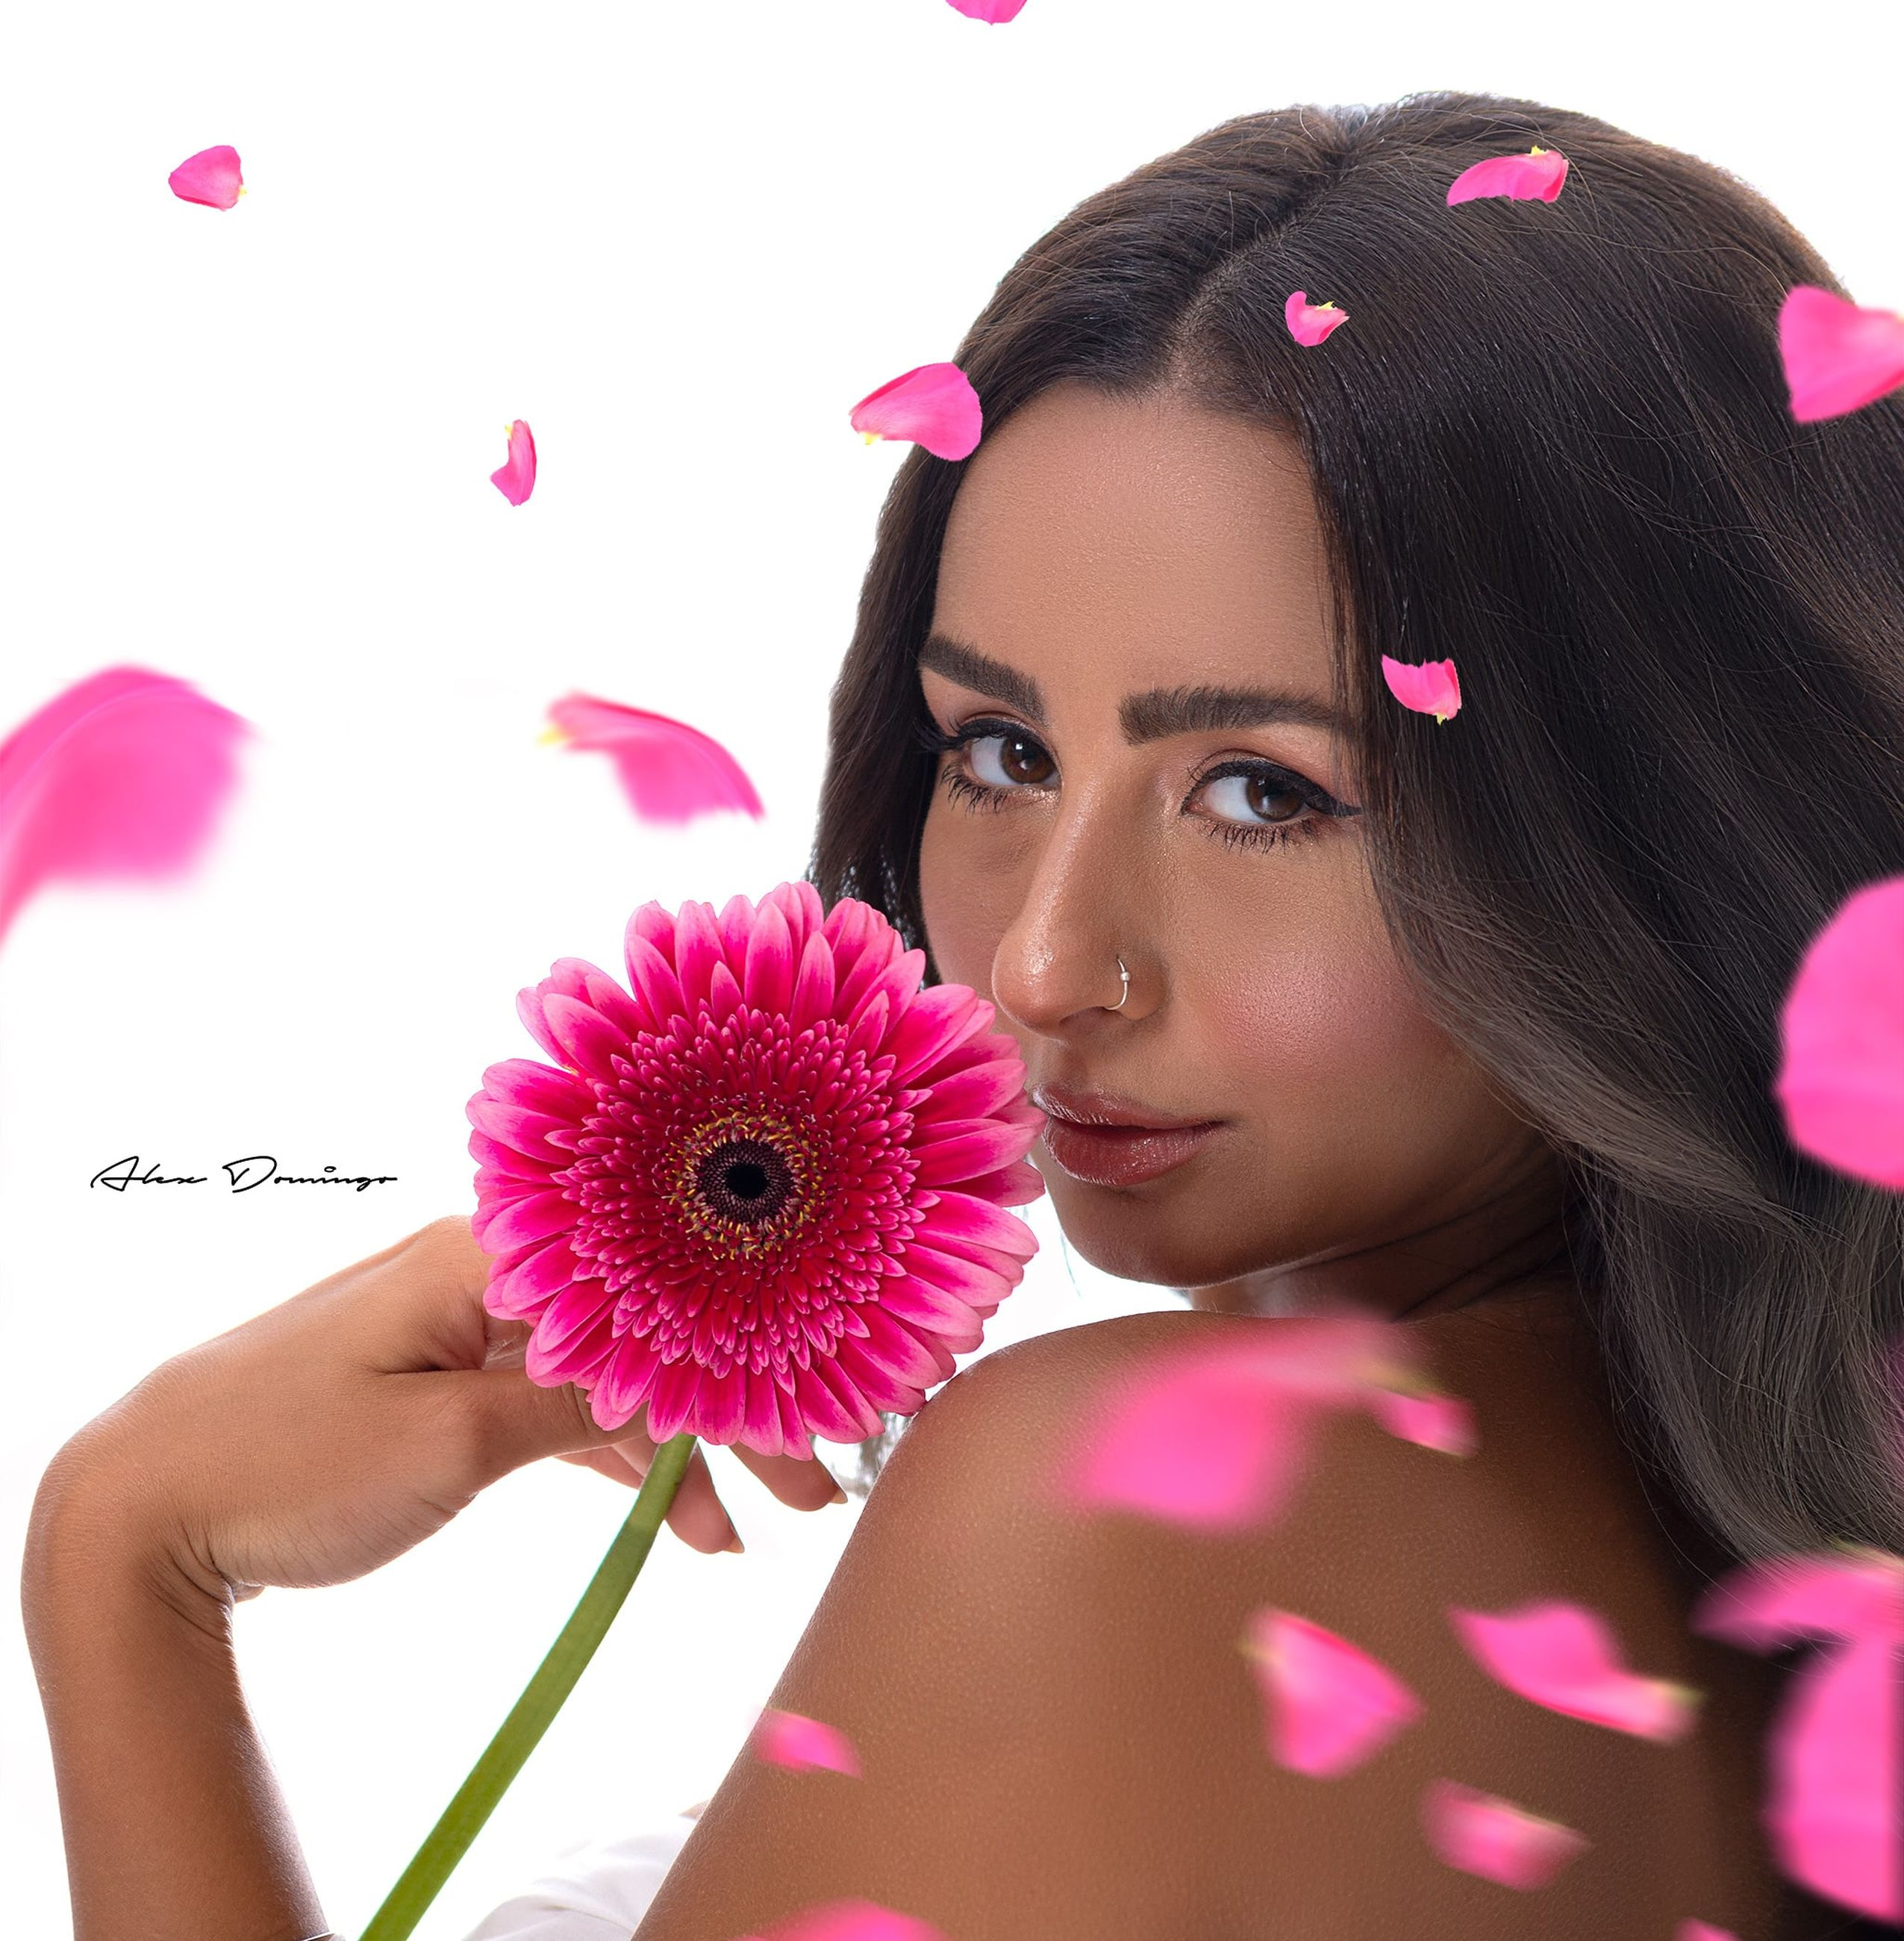 pink, flower, women, flowering plant, portrait, one person, purple, adult, young adult, plant, beauty in nature, make-up, headshot, fashion, hairstyle, looking at camera, female, nature, emotion, long hair, freshness, holding, eyelash, studio shot, human eye, petal, cute, smiling, indoors, brown hair, happiness, multi colored, close-up, lifestyles, human face, rose, clothing, child, positive emotion